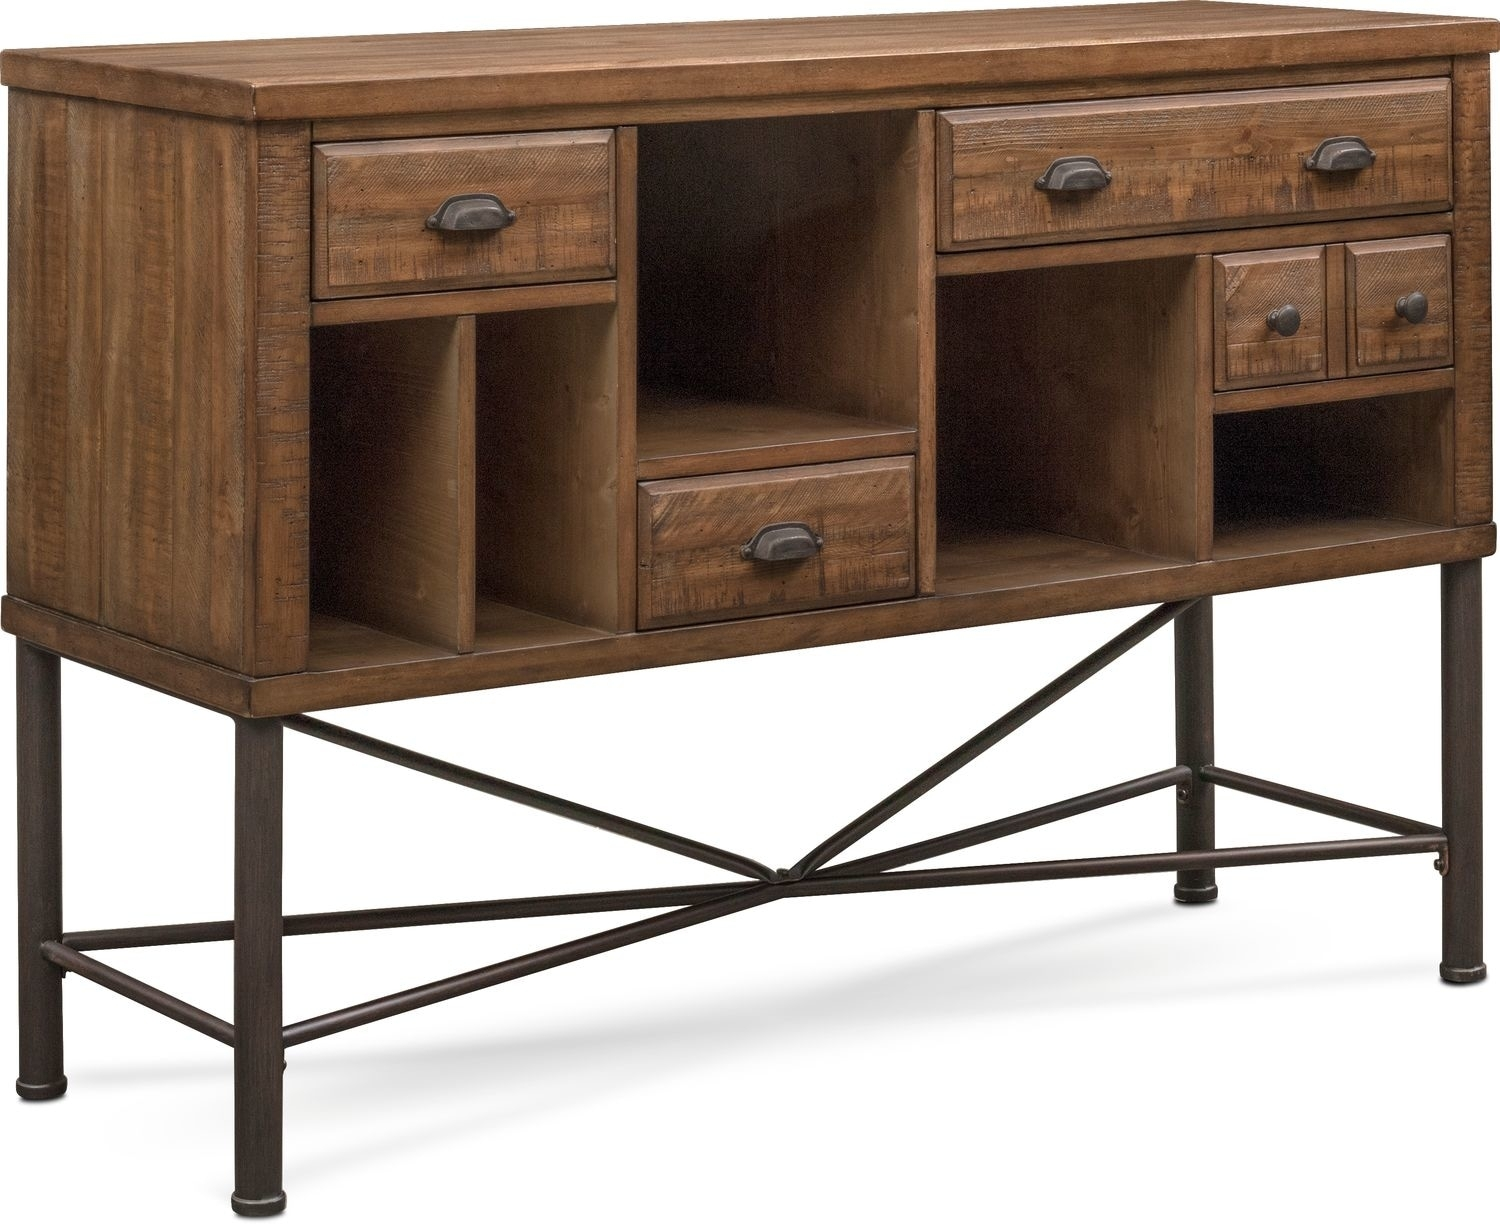 Bodhi Sideboard – Rustic Pine | American Signature Furniture With Most Popular Iron Pine Sideboards (#4 of 20)